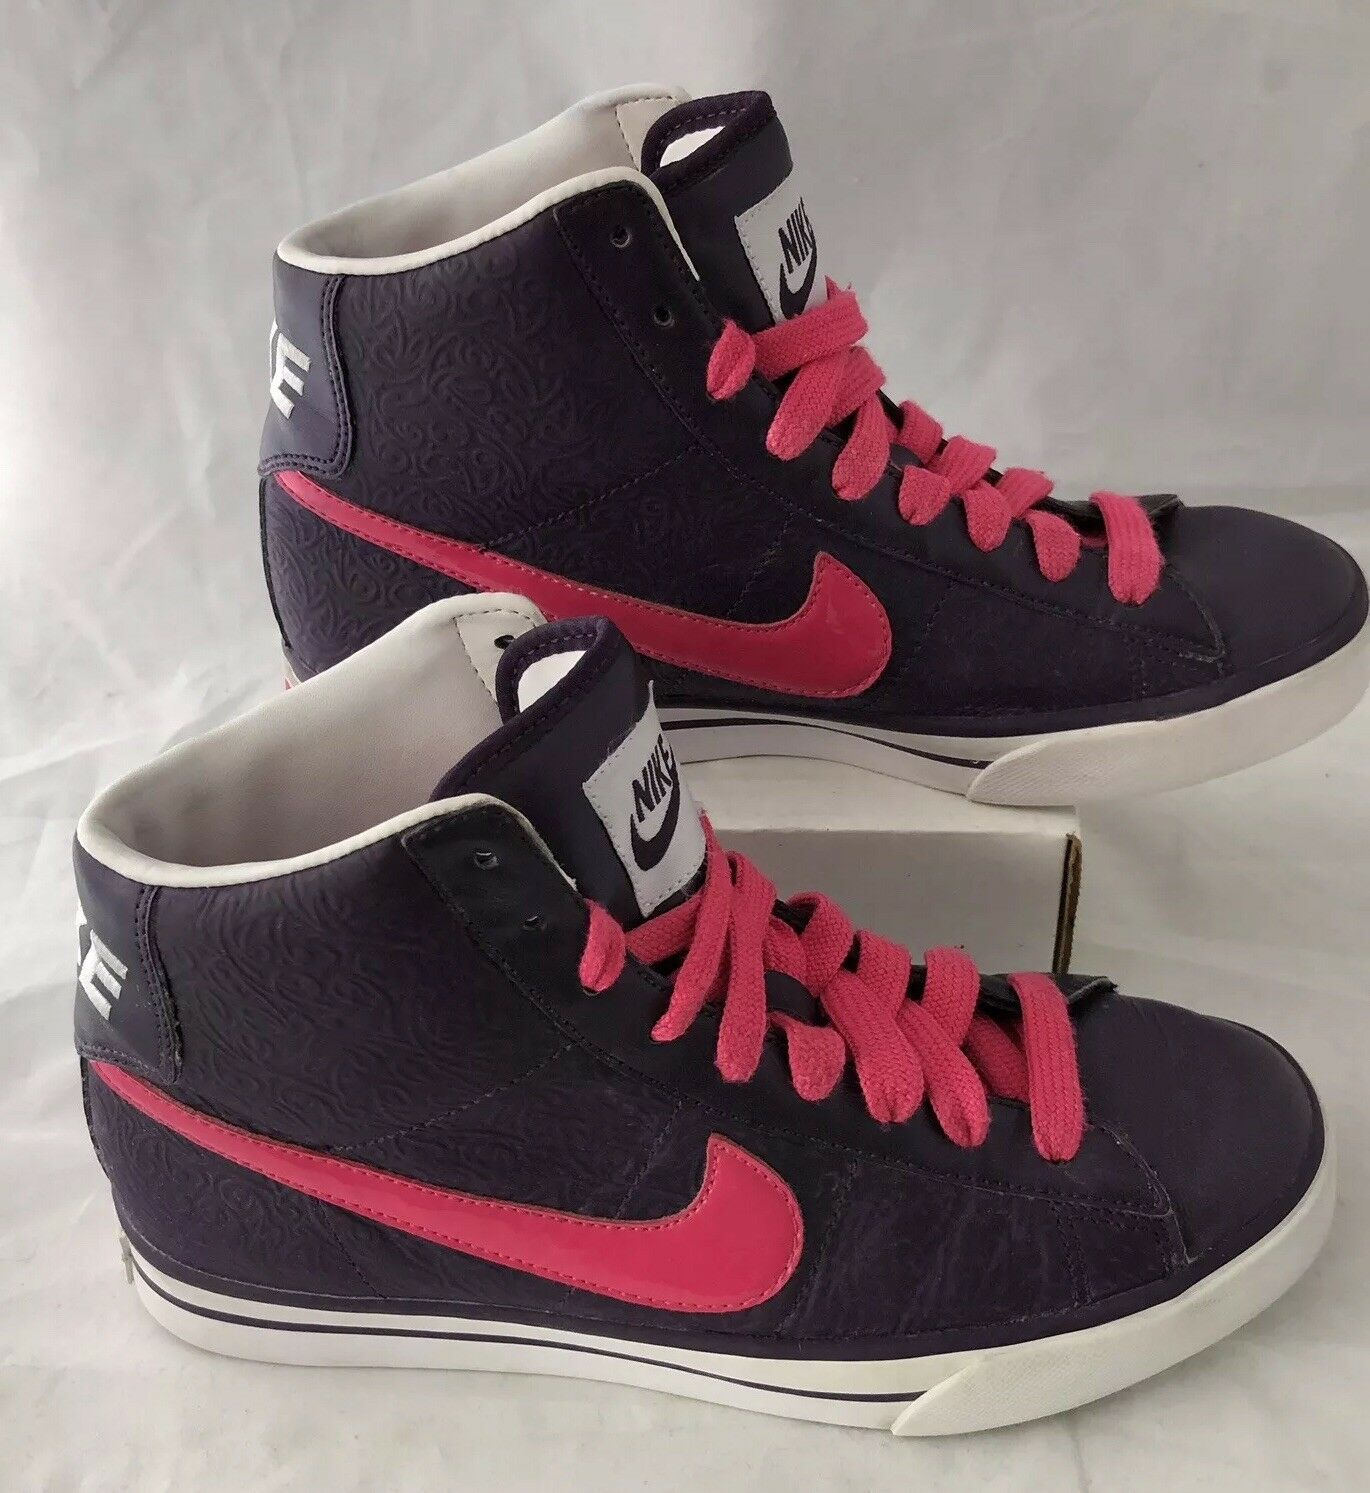 Nike Sweet Classic High Top Leather Athletic shoes Womens 7.5 Purple Pink Tooled